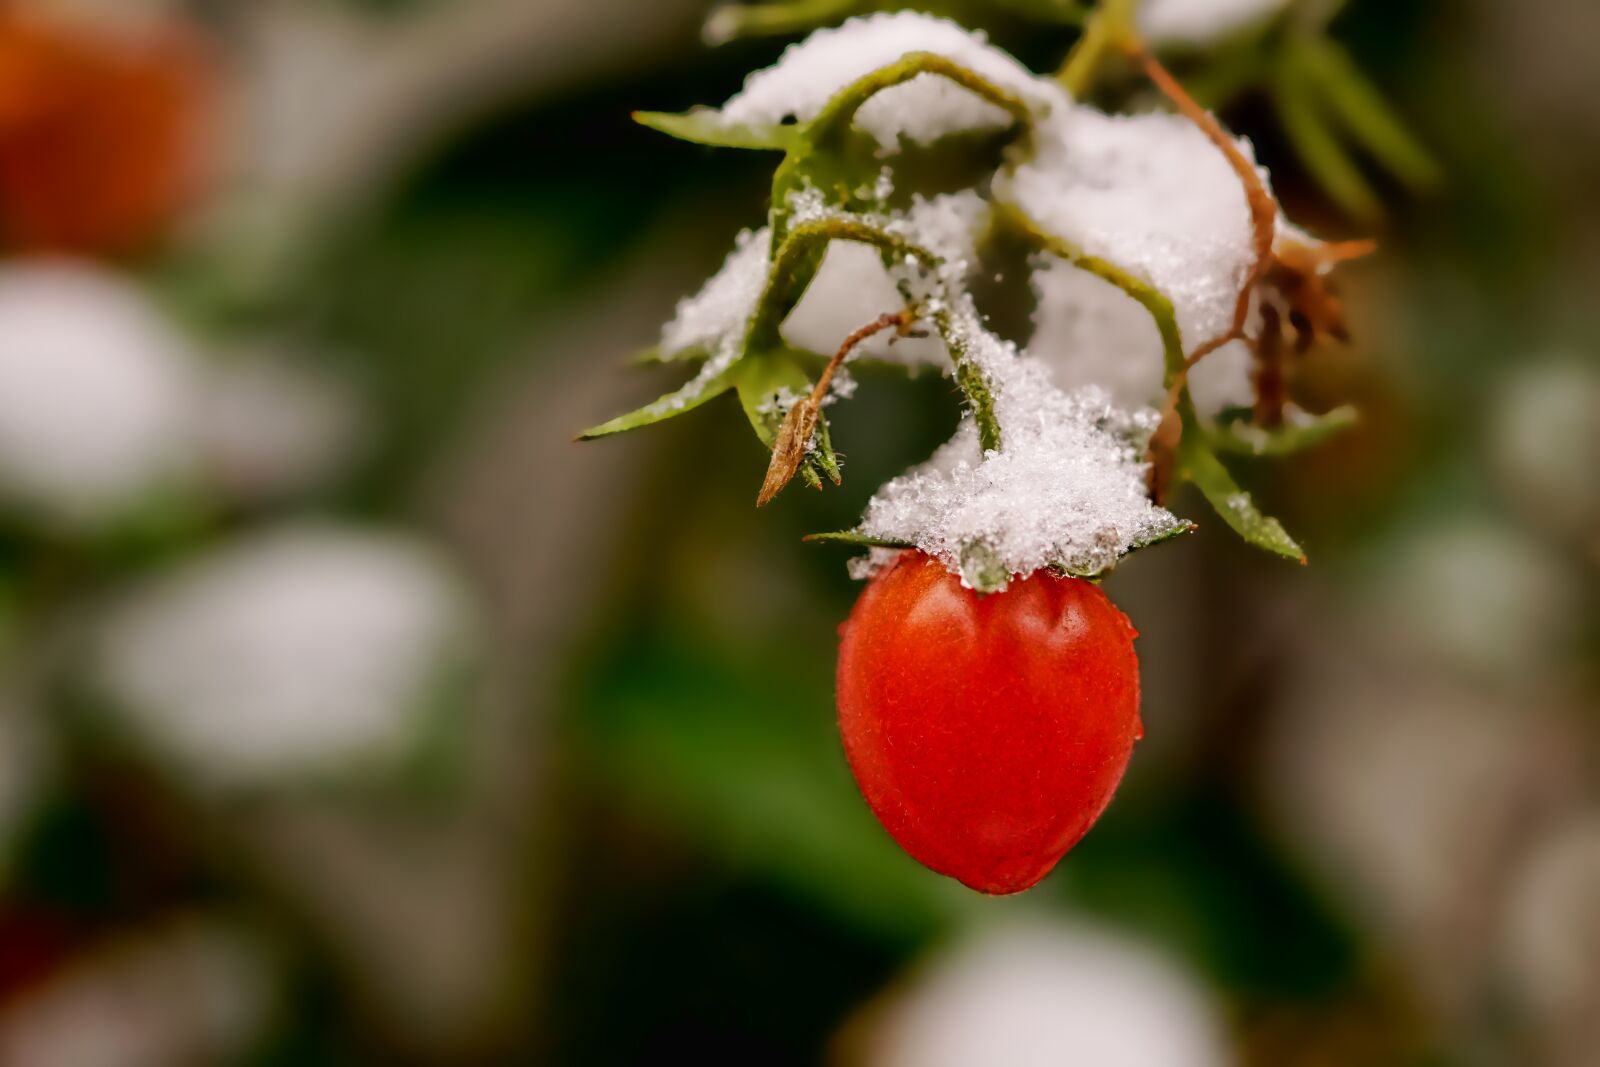 """Sony a6000 sample photo. """"Nature, vegetables, tomatoes"""" photography"""